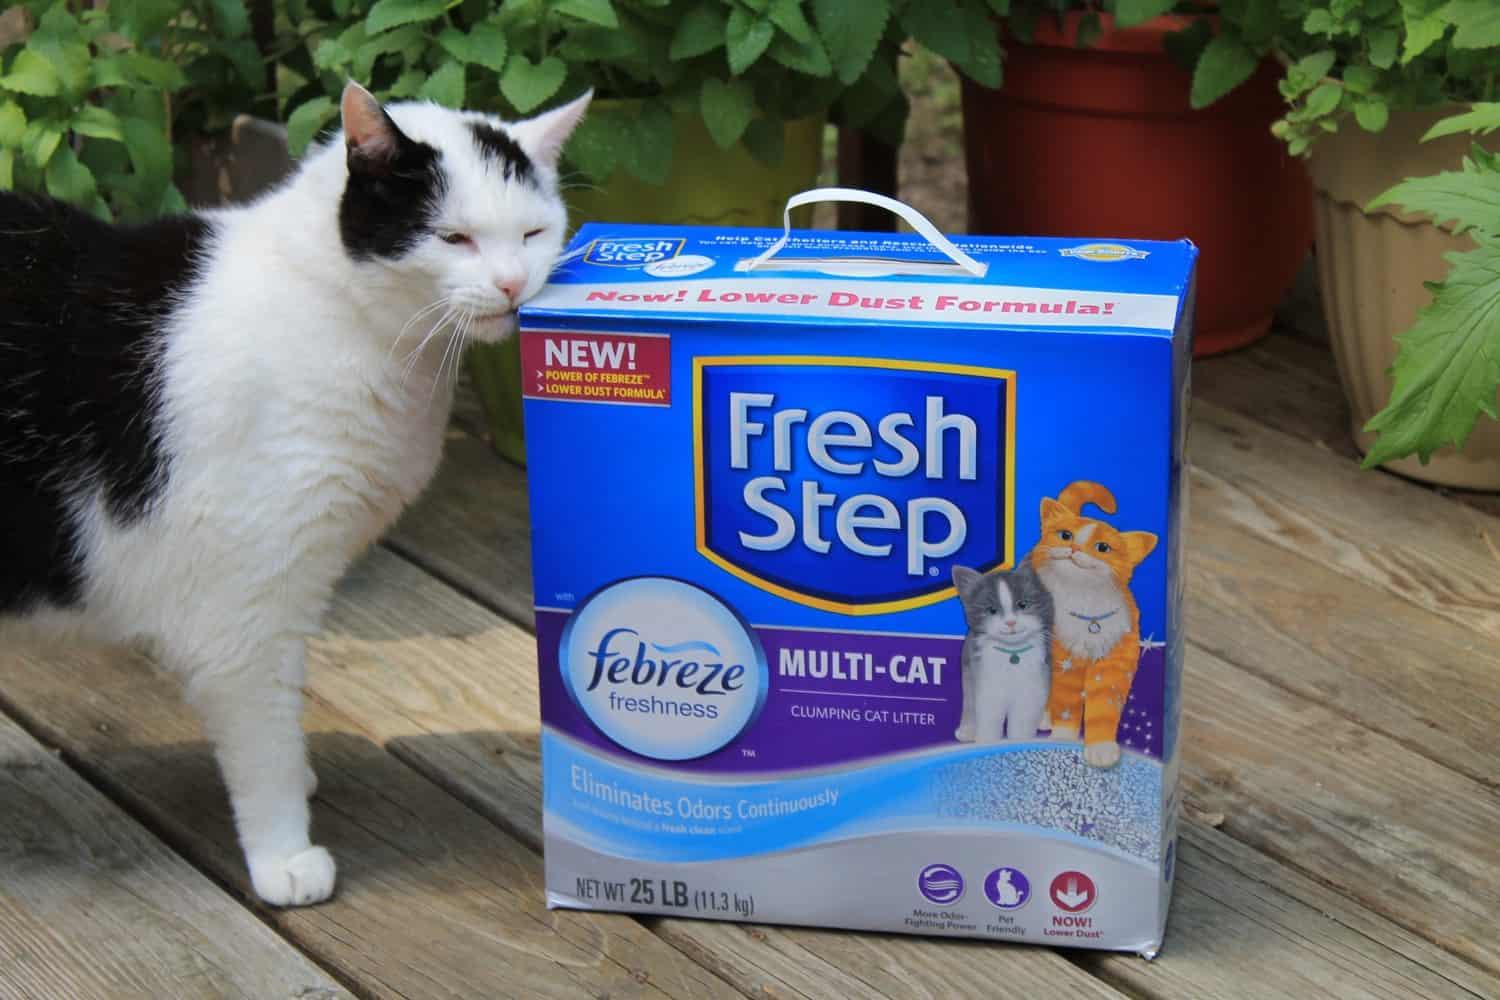 Say Goodbye to Stinky Litter Box Odors for 10 Days Straight with #FreshStepFebreze #Unsmellable